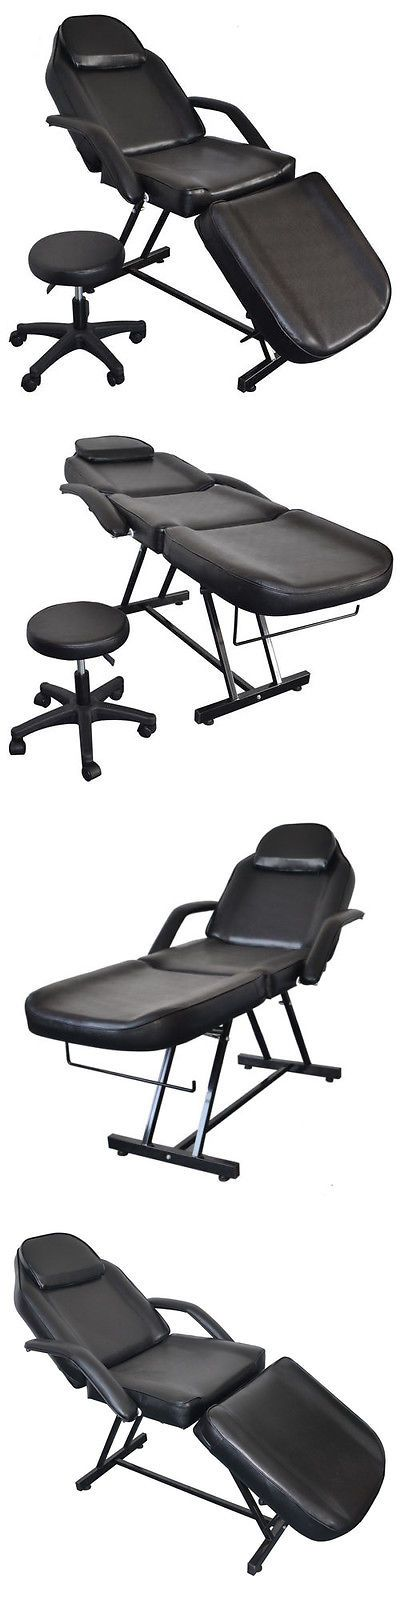 Salon Chairs and Dryers: Beauty Barber Chair With Stool Facial Tattoo Chair Massage Bed Salon Equipment -> BUY IT NOW ONLY: $202.5 on eBay!